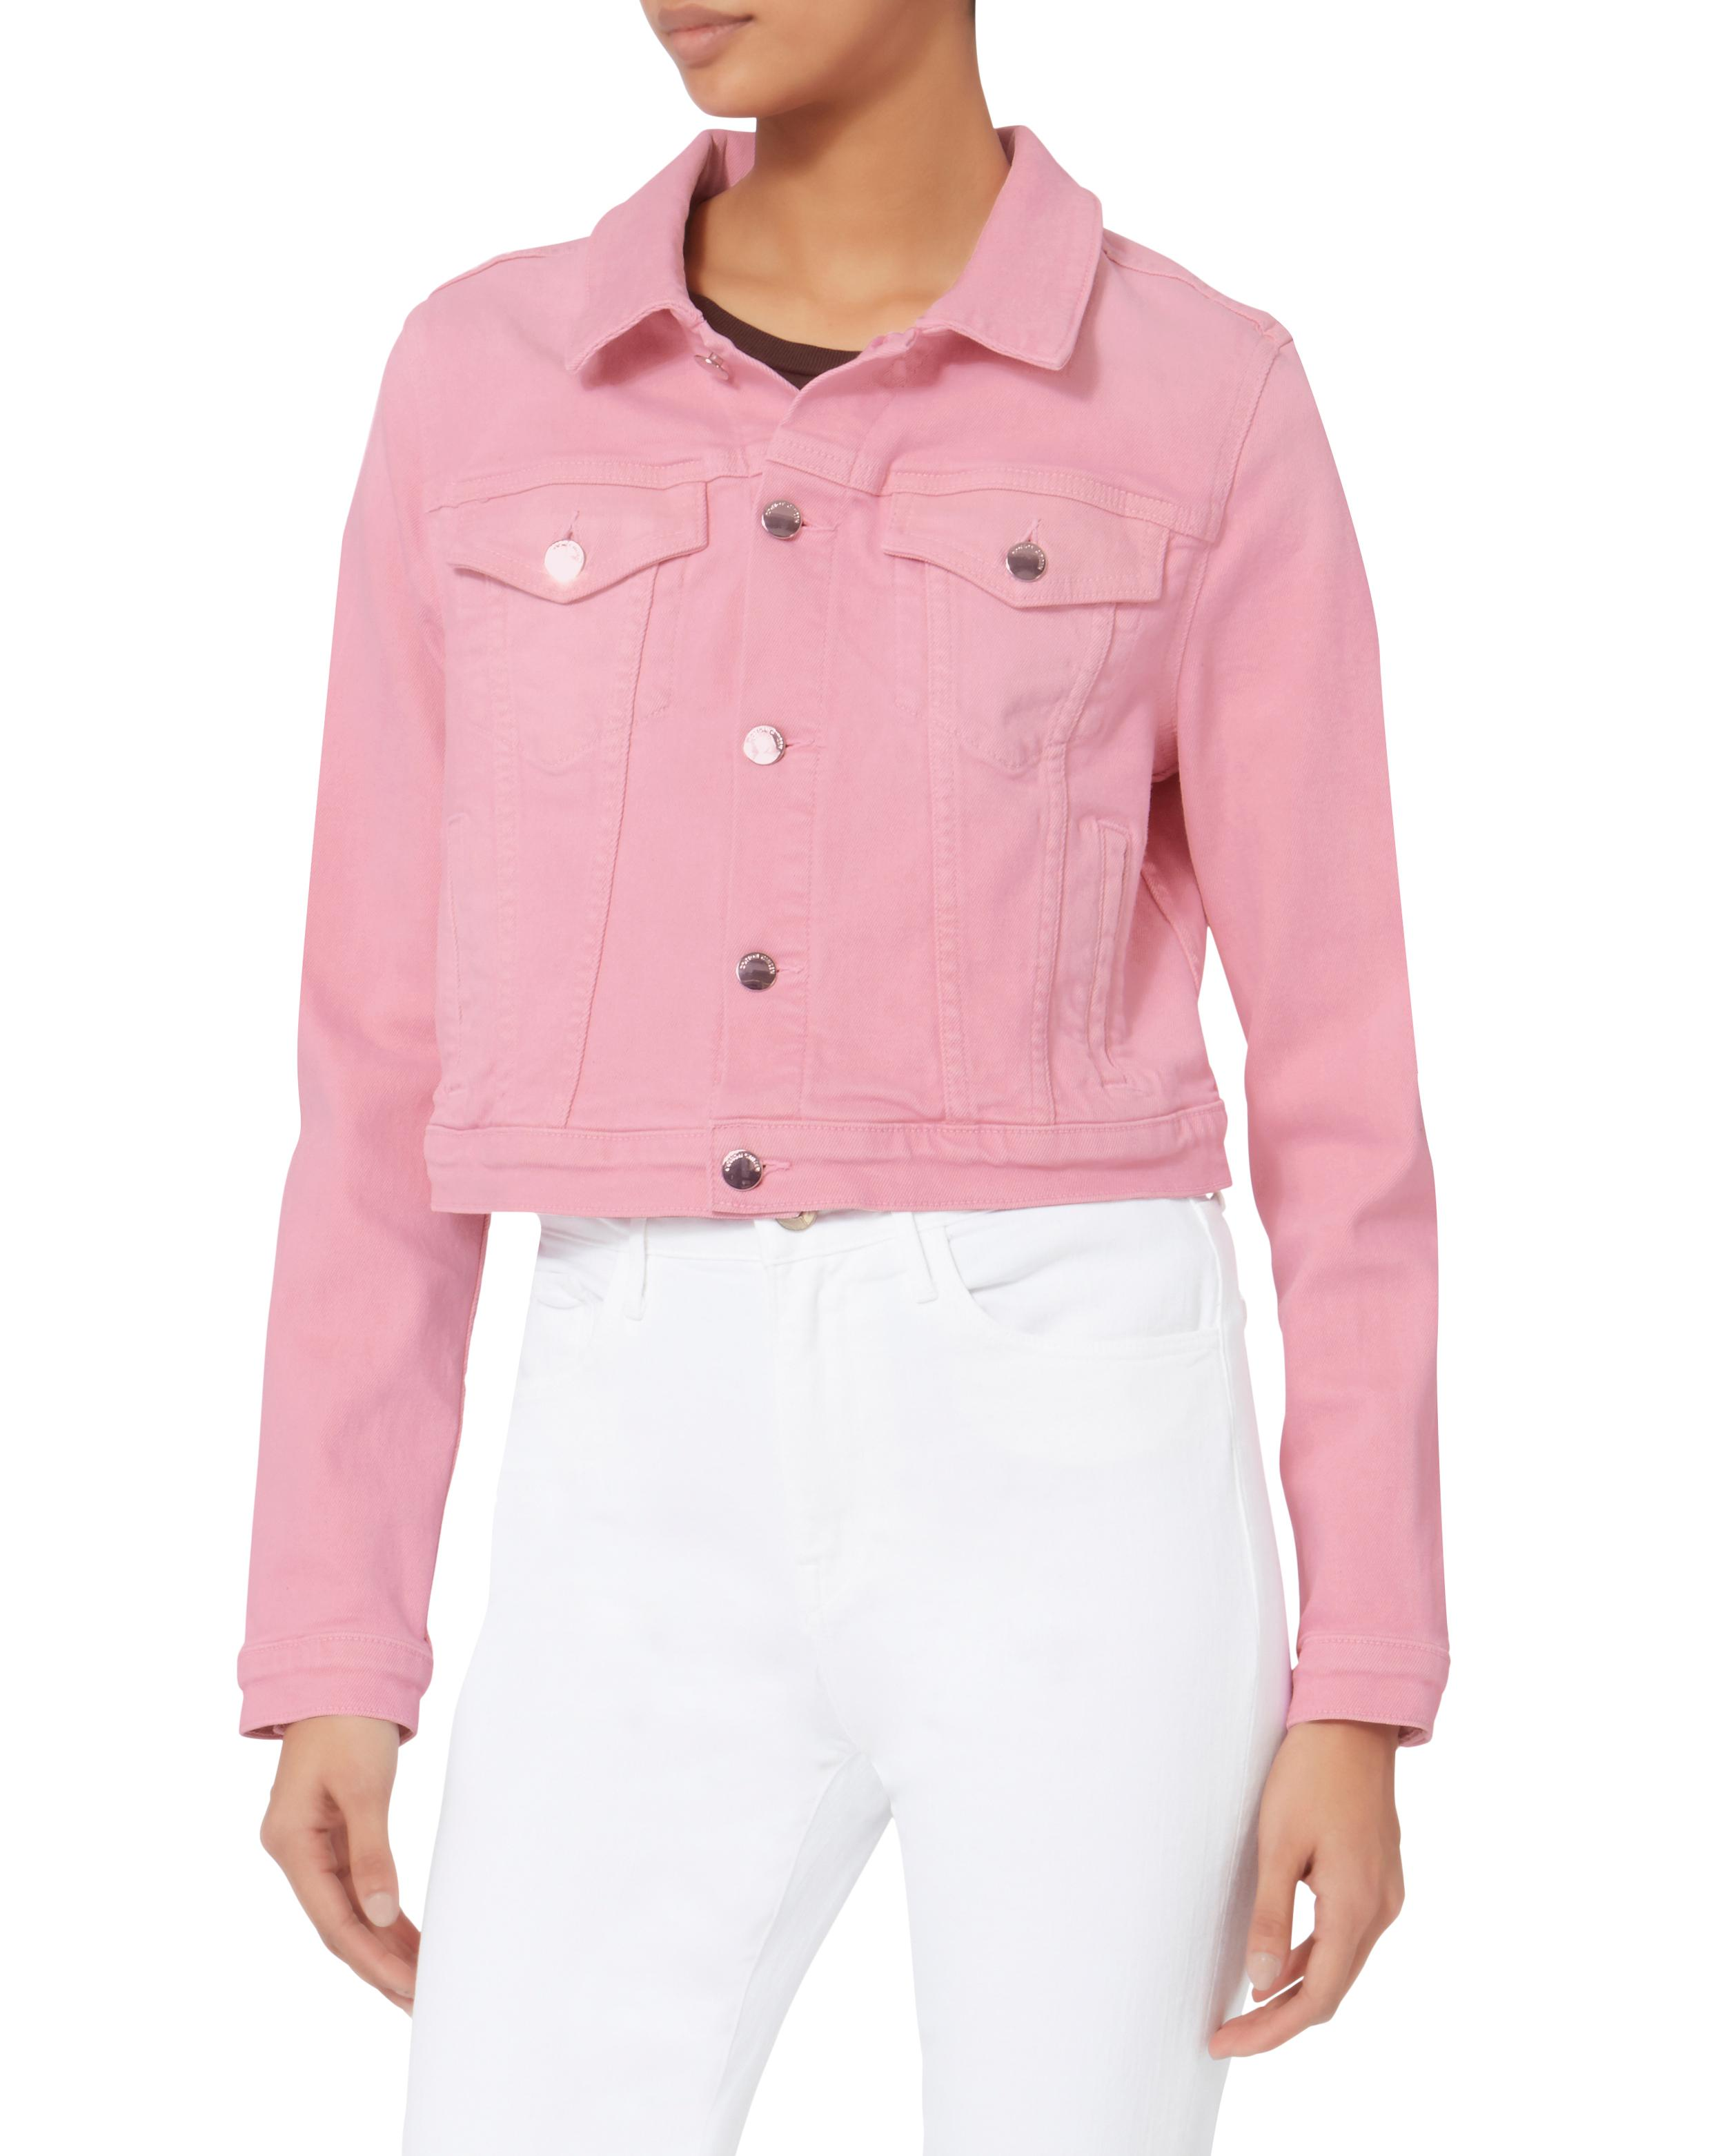 21bc33f5f2bfe7 Lyst - Cotton Citizen Pink Cropped Jean Jacket in Pink